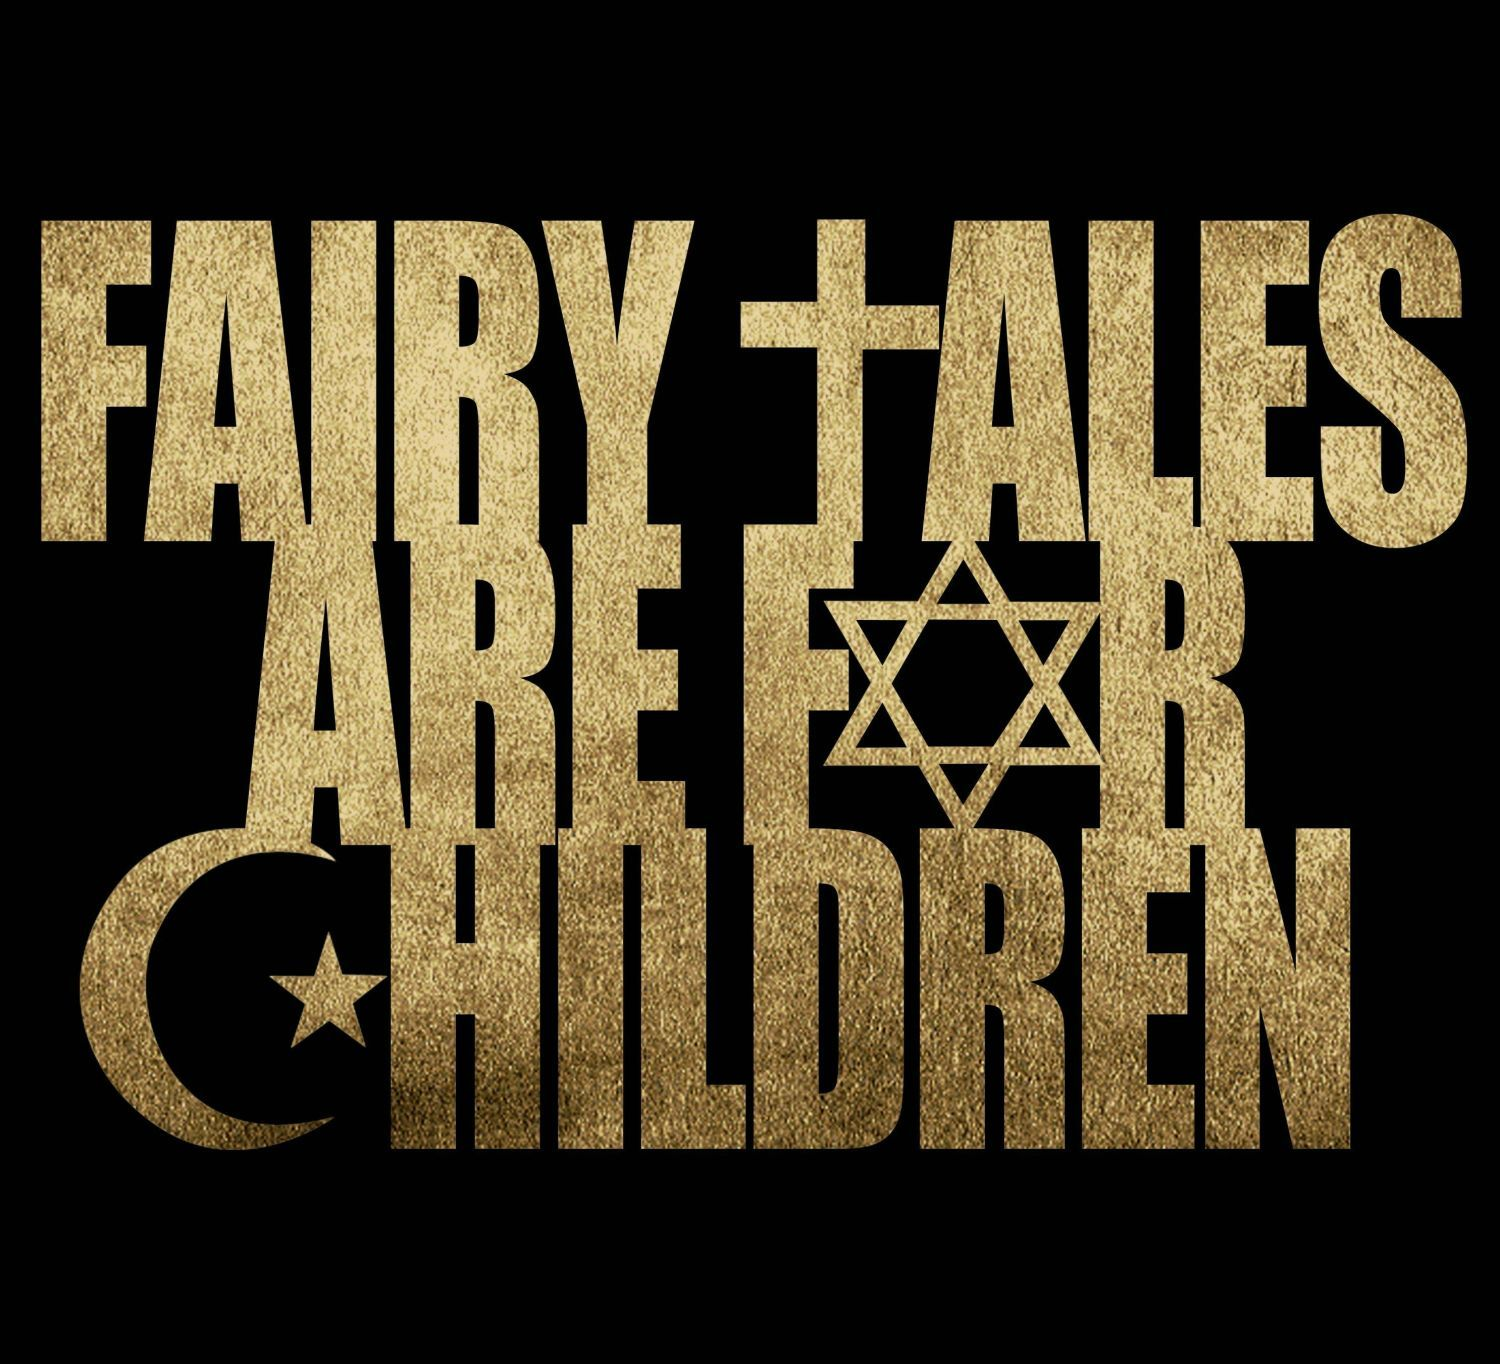 Fairytales are for children